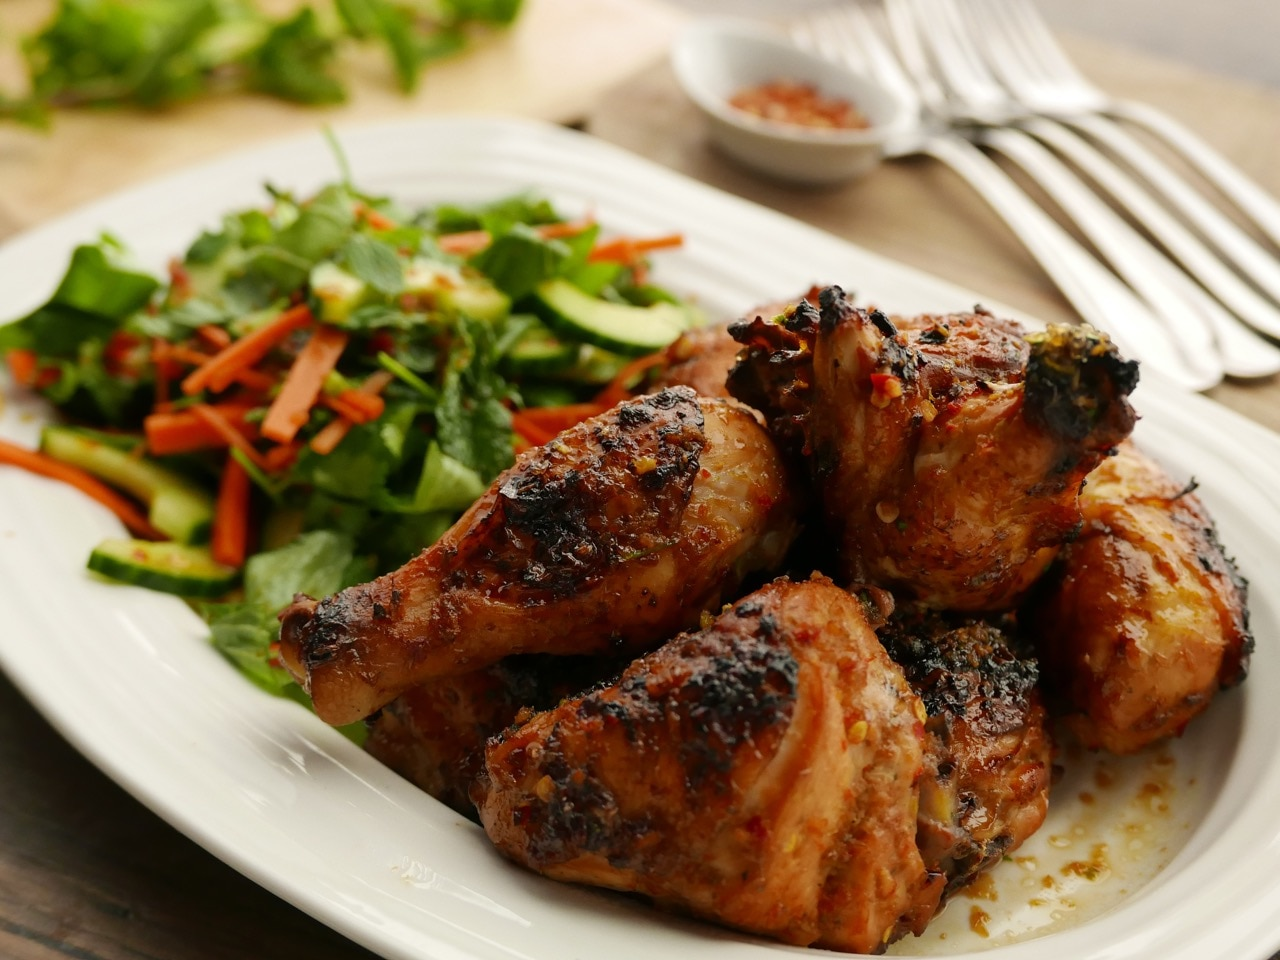 Spiced Chicken with Cucumber Salad